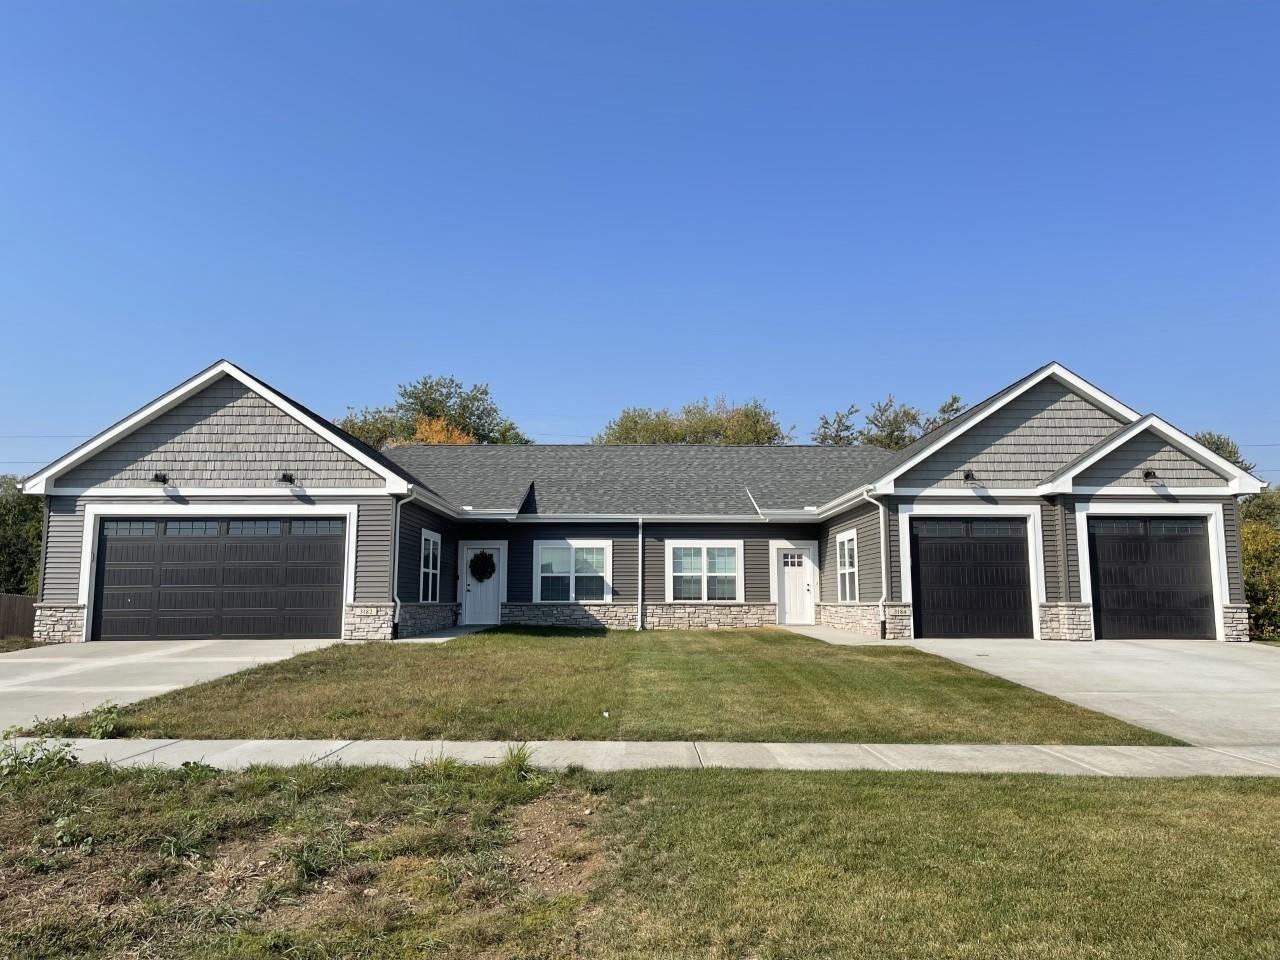 3925 Tanglewood Pl, Janesville, WI 53546 - #: 1921288